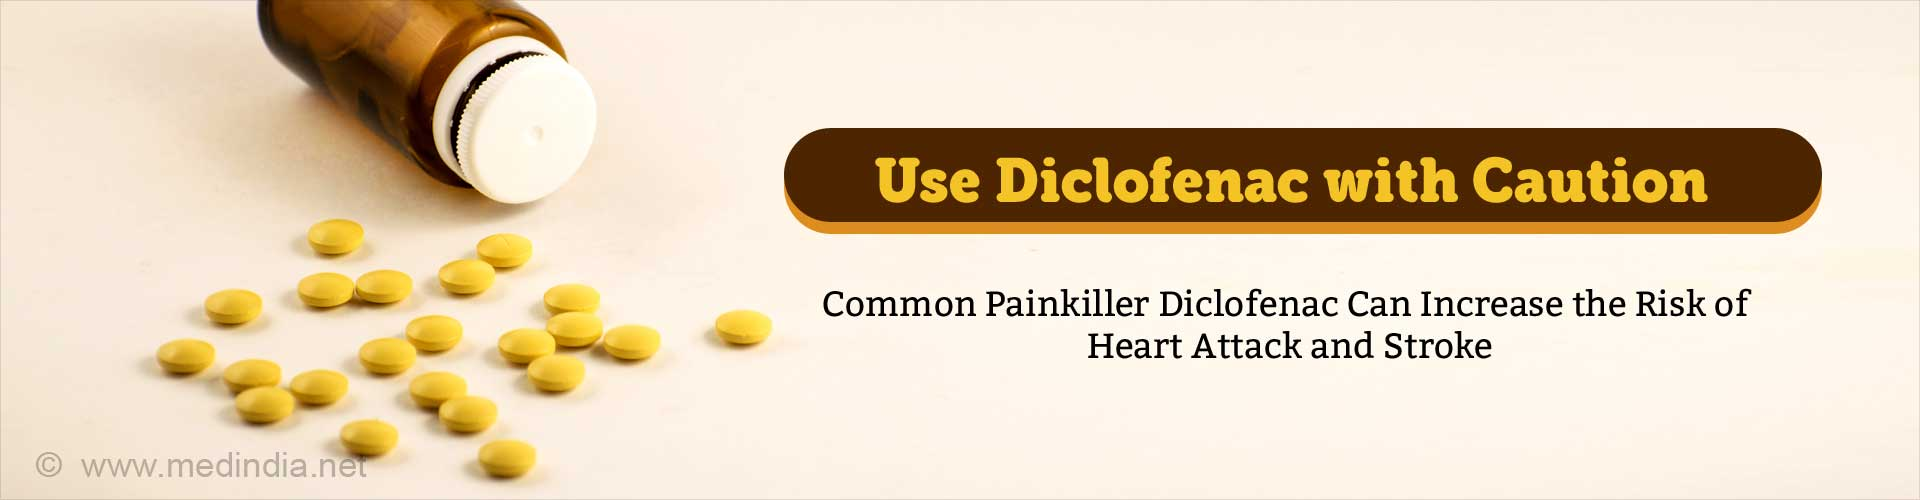 Over-the-counter Painkiller Associated With Increased Risk of Heart Problems